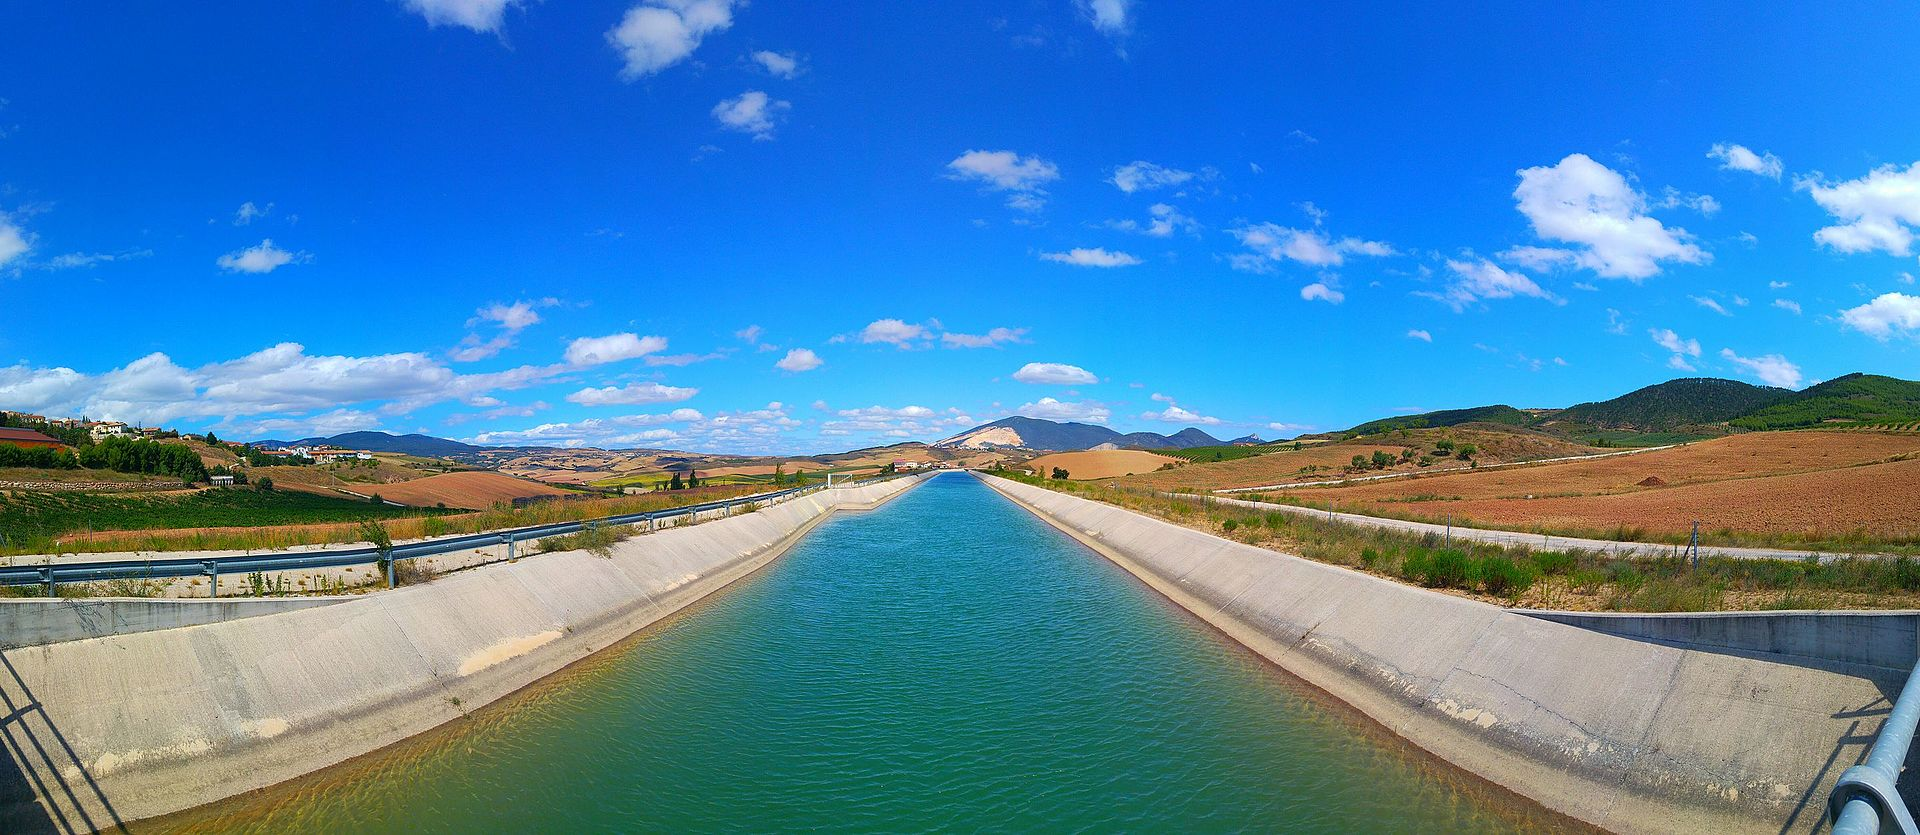 Canal in Spain may host 160 MW solar plant